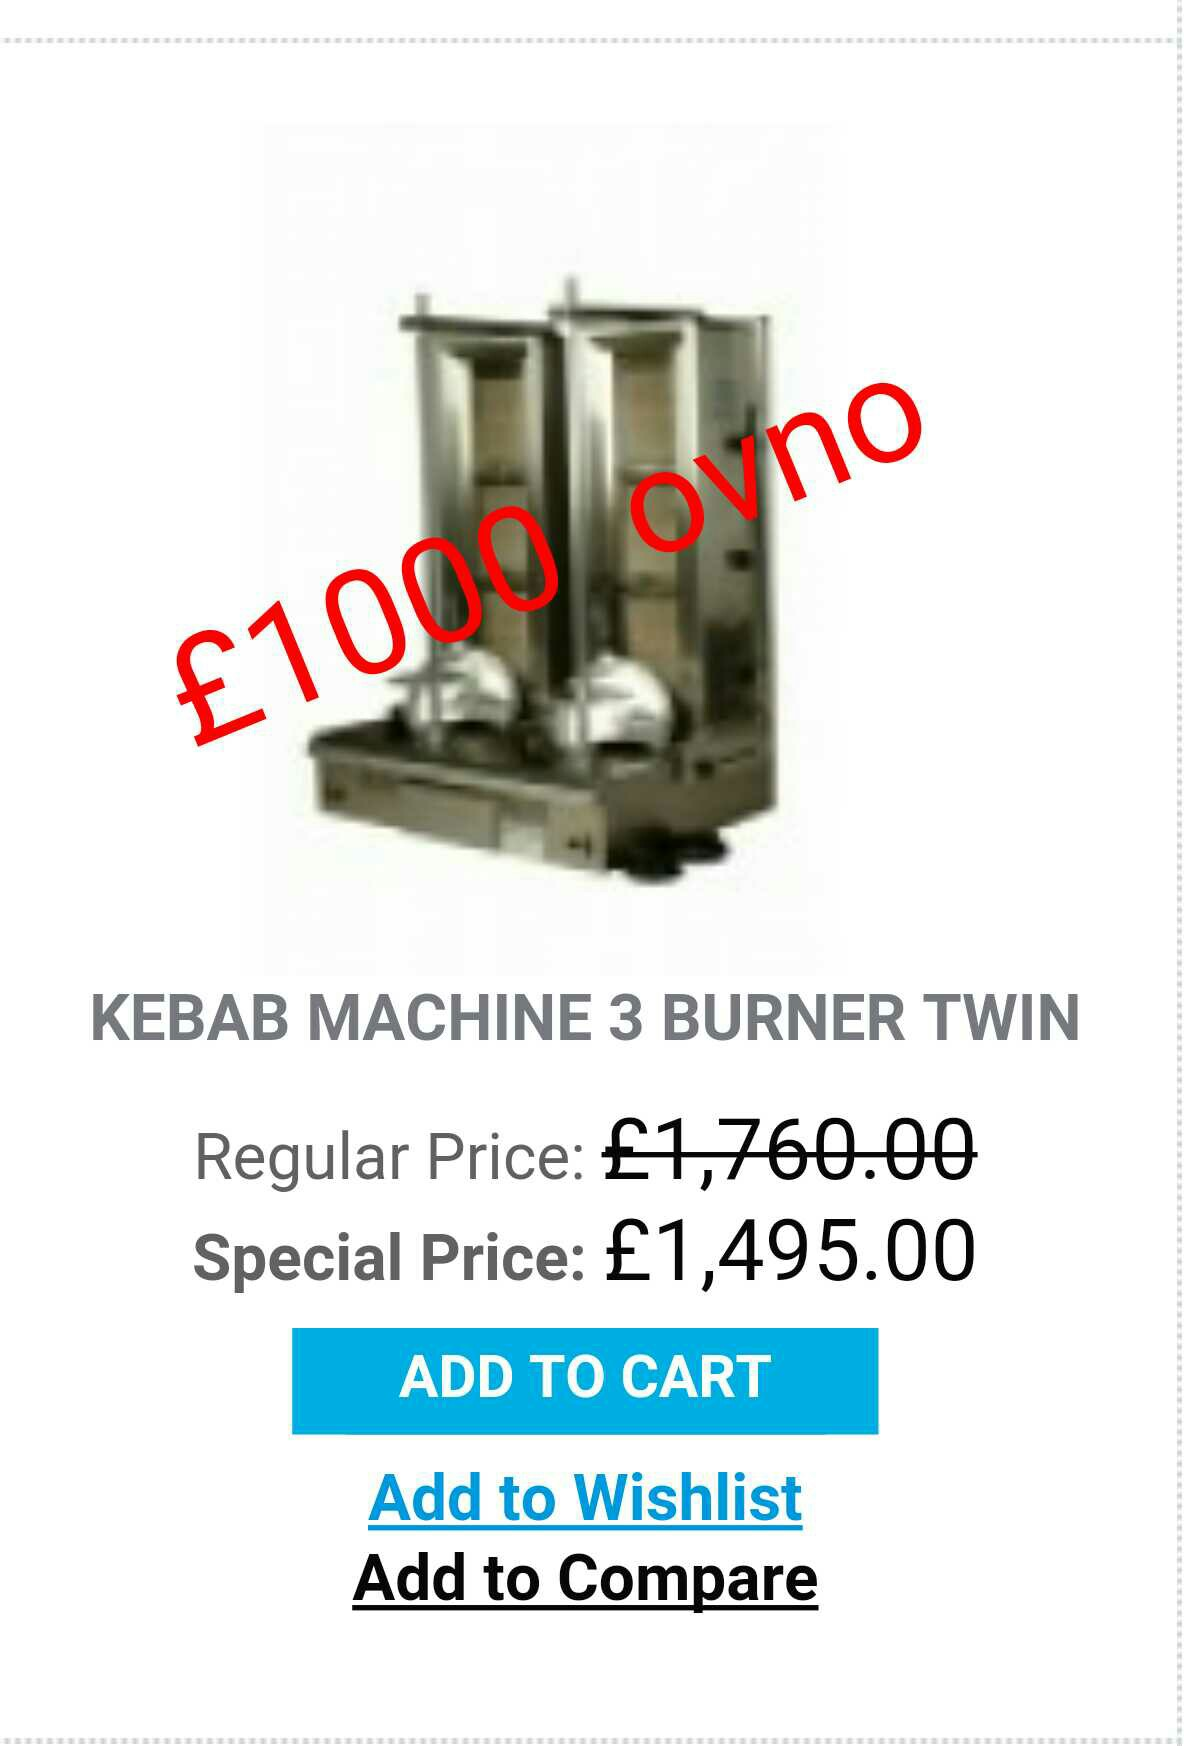 kebab machine for sale